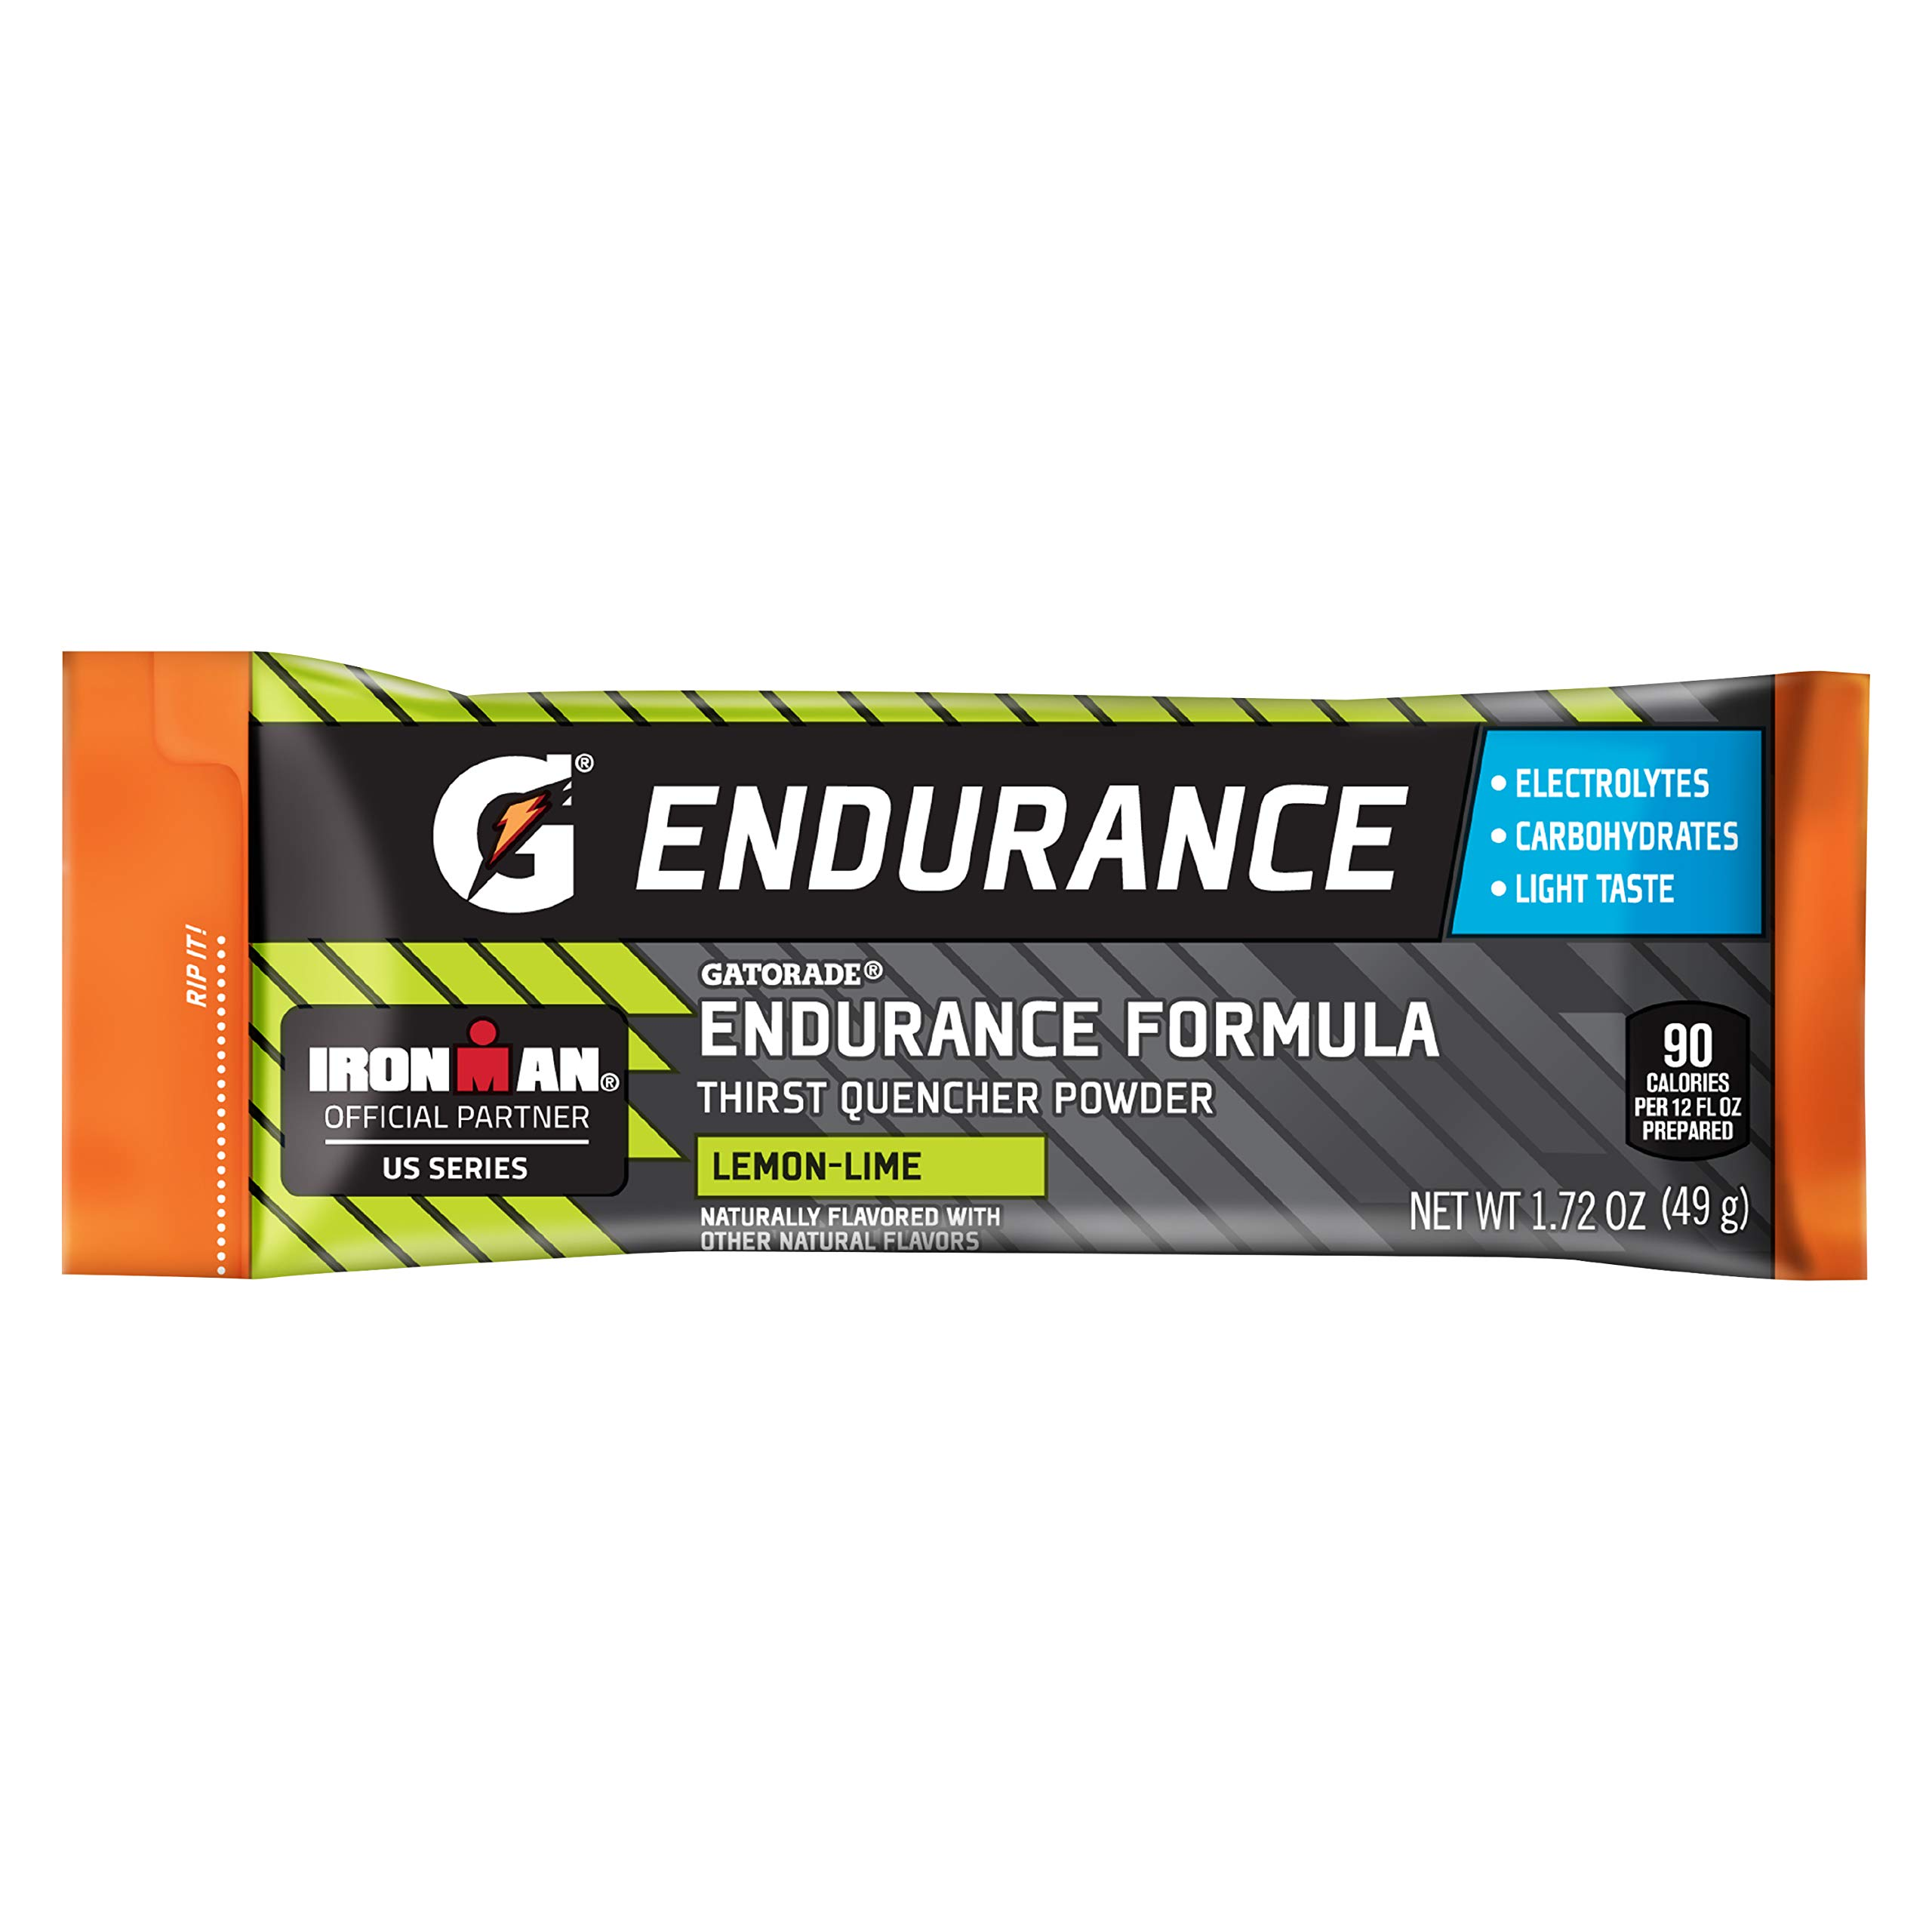 Gatorade Endurance Formula Powder Sticks, Lemon Lime, 1.72 oz. Packs, 12 Count by Gatorade